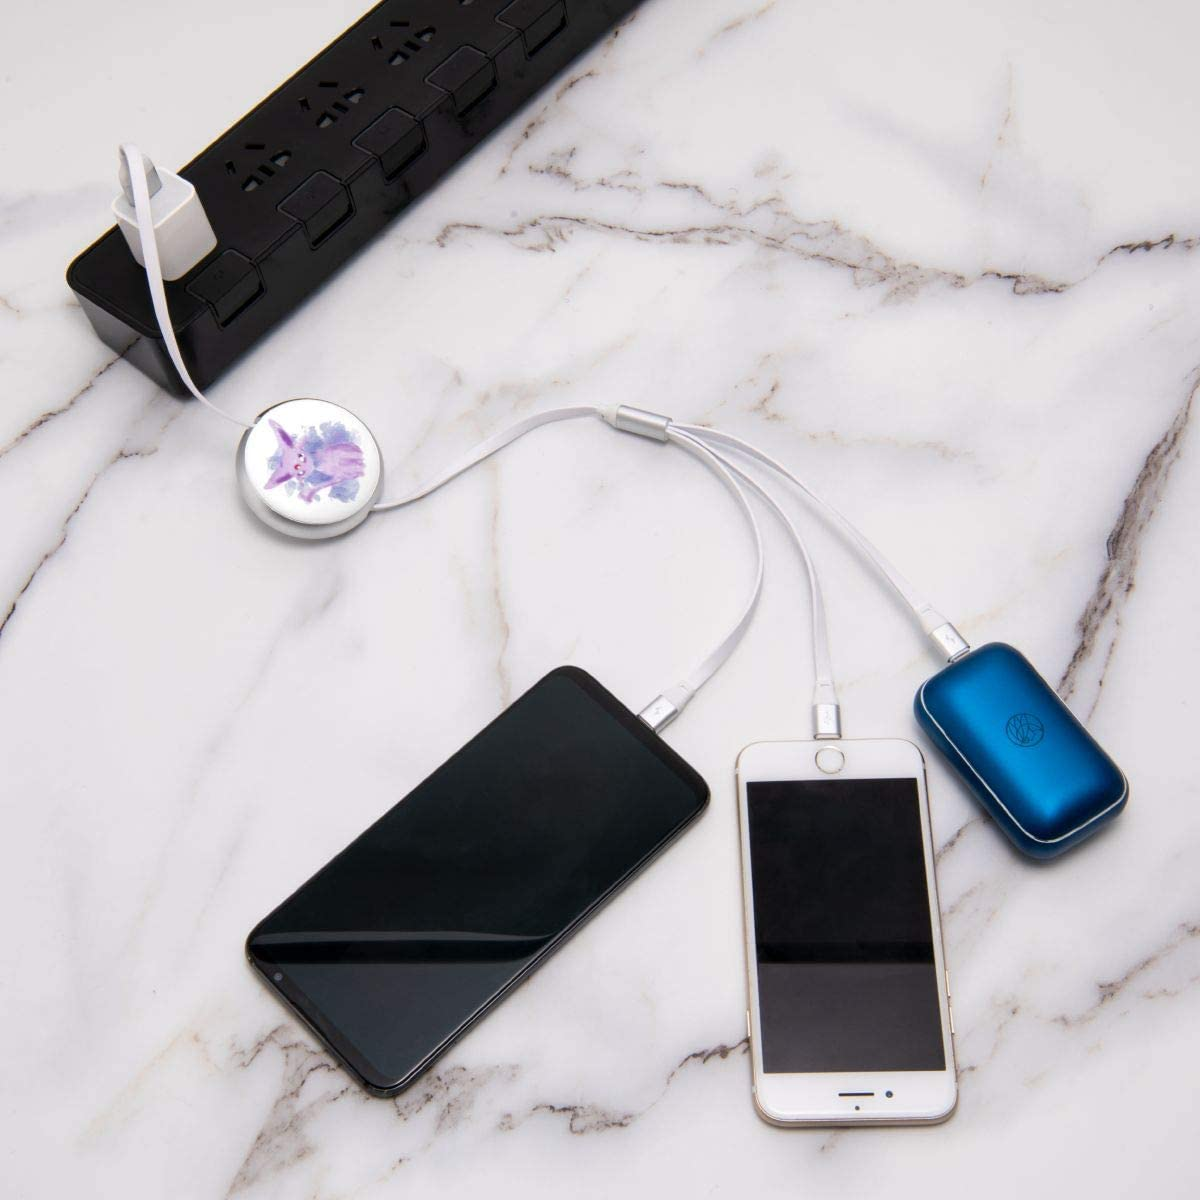 Espeon Psychic-Type Watercolor 3 in 1 Retractable Multiple Charging Cable 3.0a Fast Charger Cord with Phone//Type C//Micro USB Charge Port Adapter Compatible with Cell Phones Tablets and More